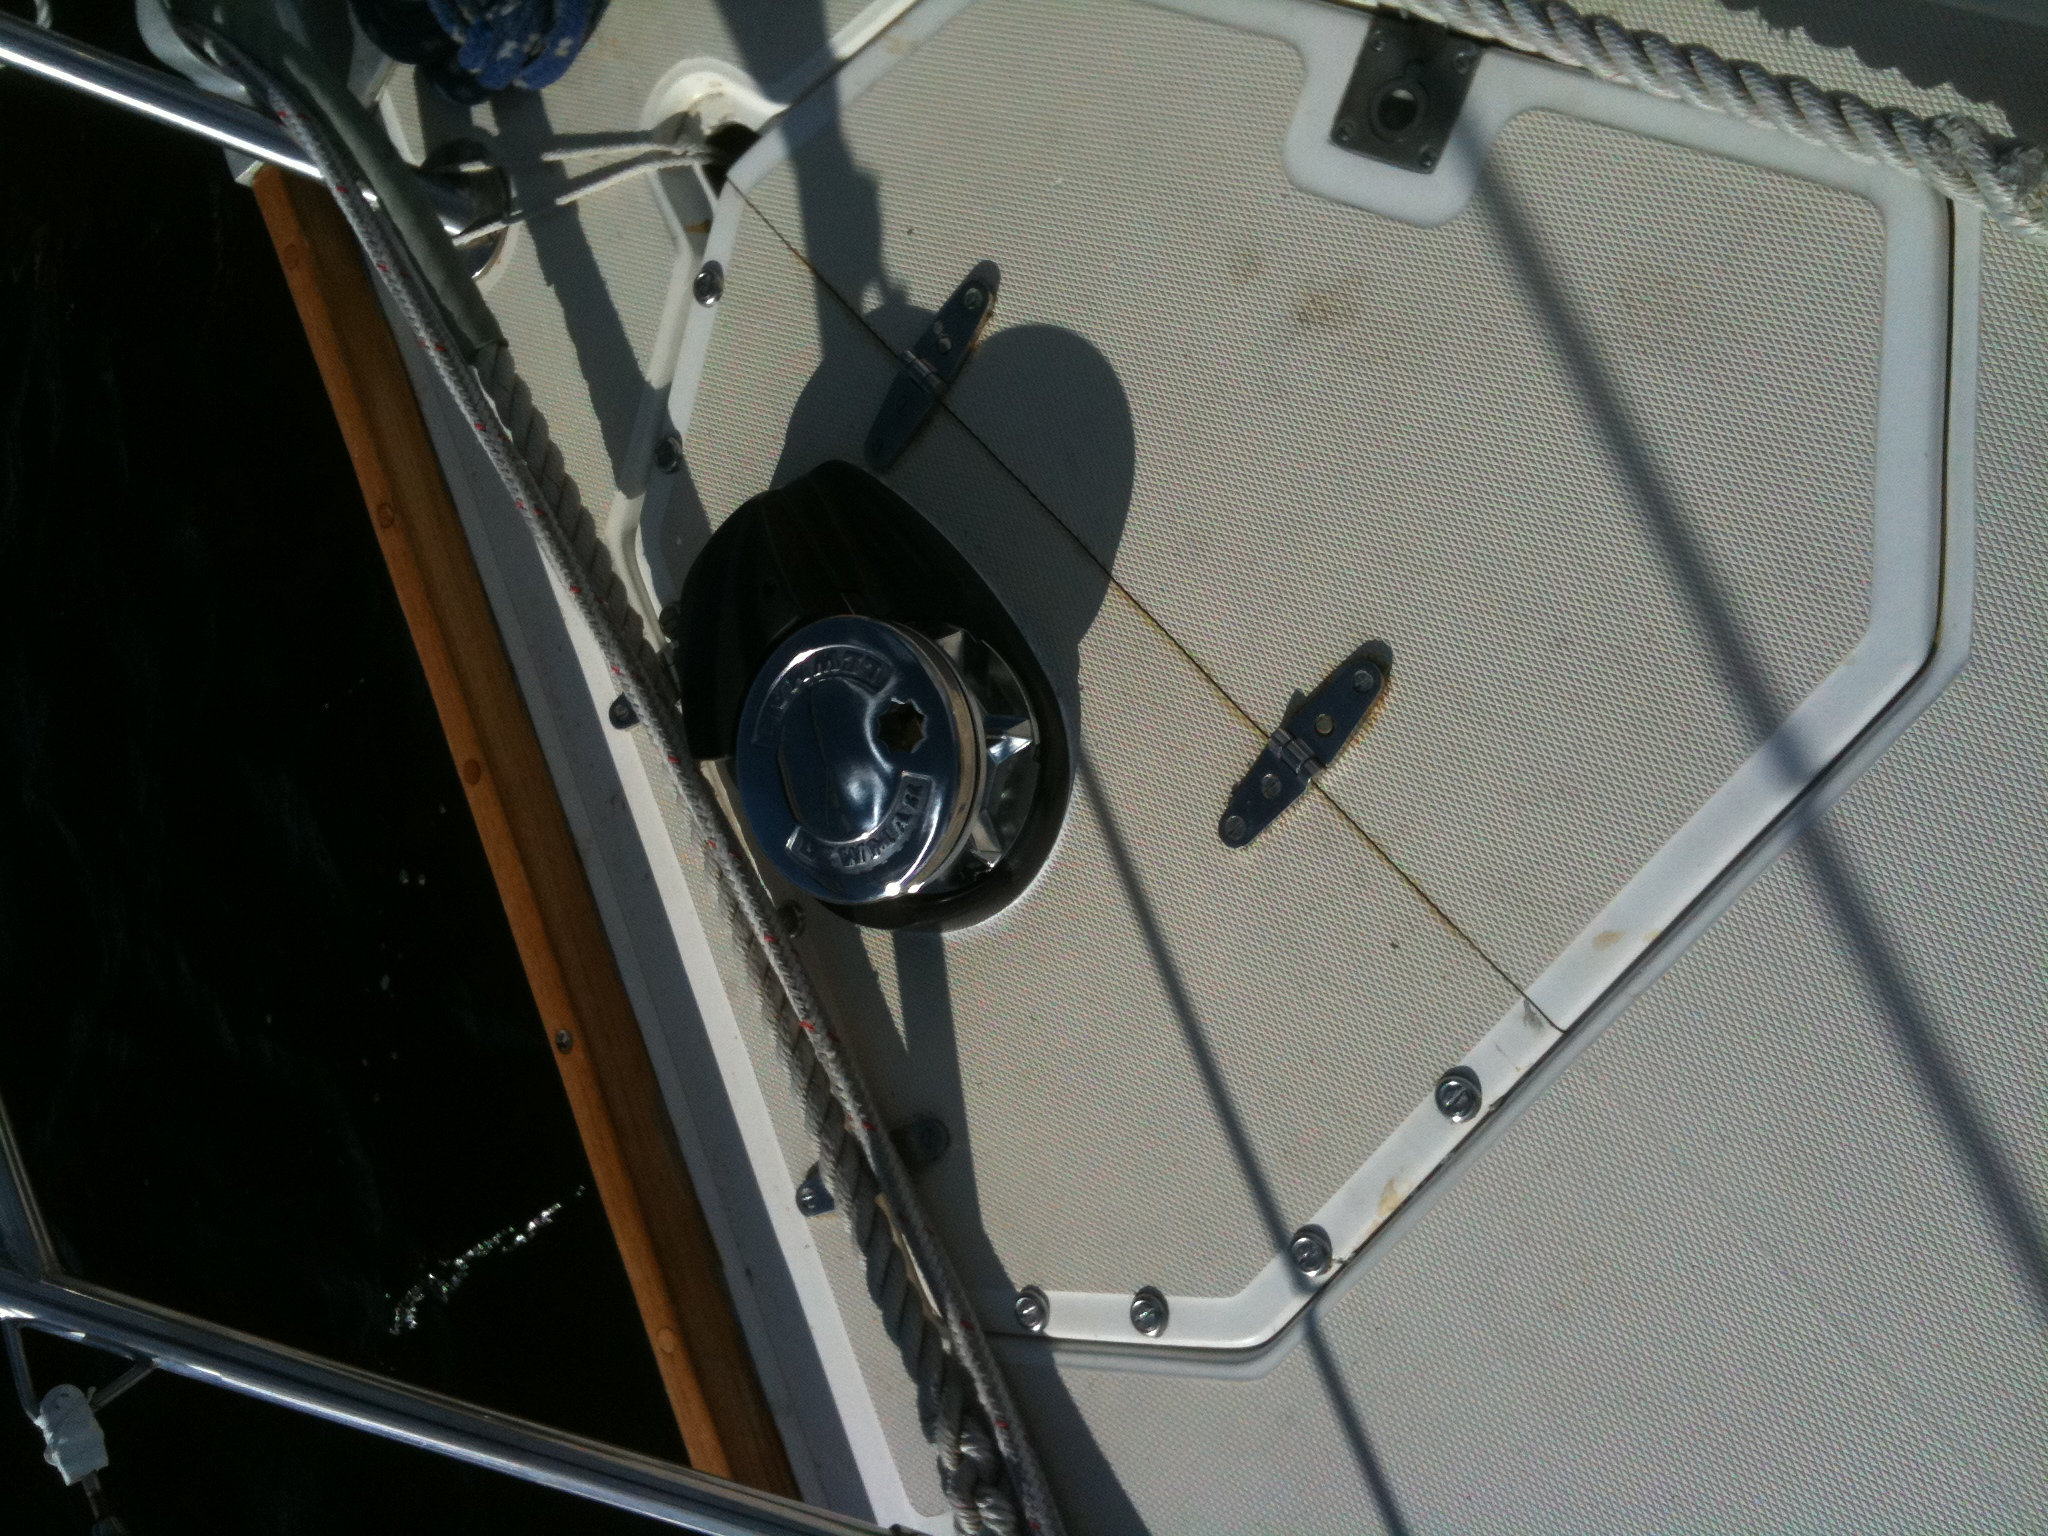 Close-up of bow.  Shows the bolts holding the lid down